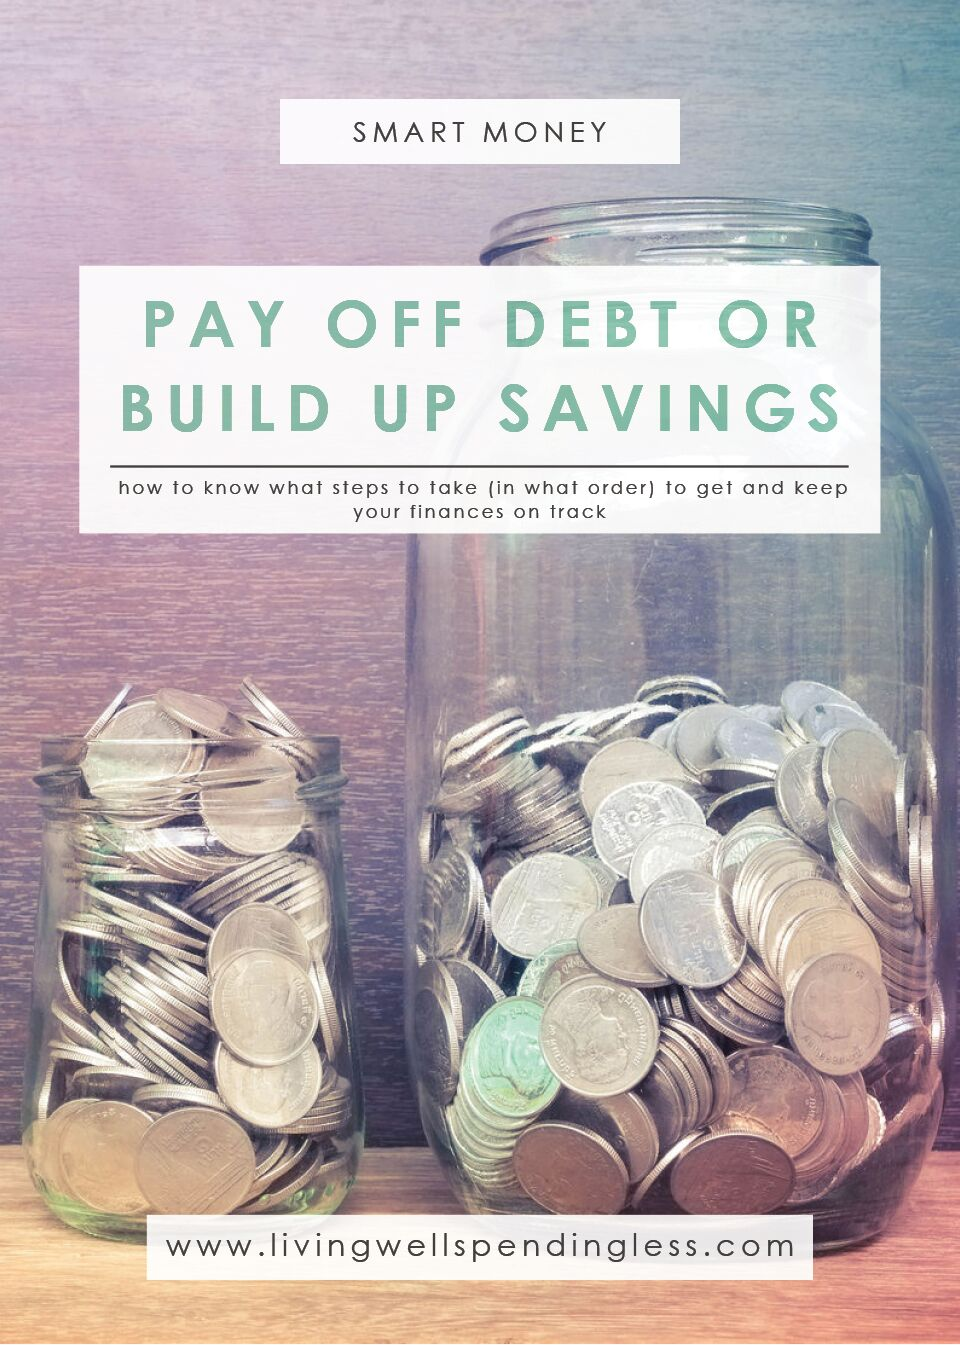 Paying Off Debt or Build Up Savings | Financial Stability | Smart Money Tips |